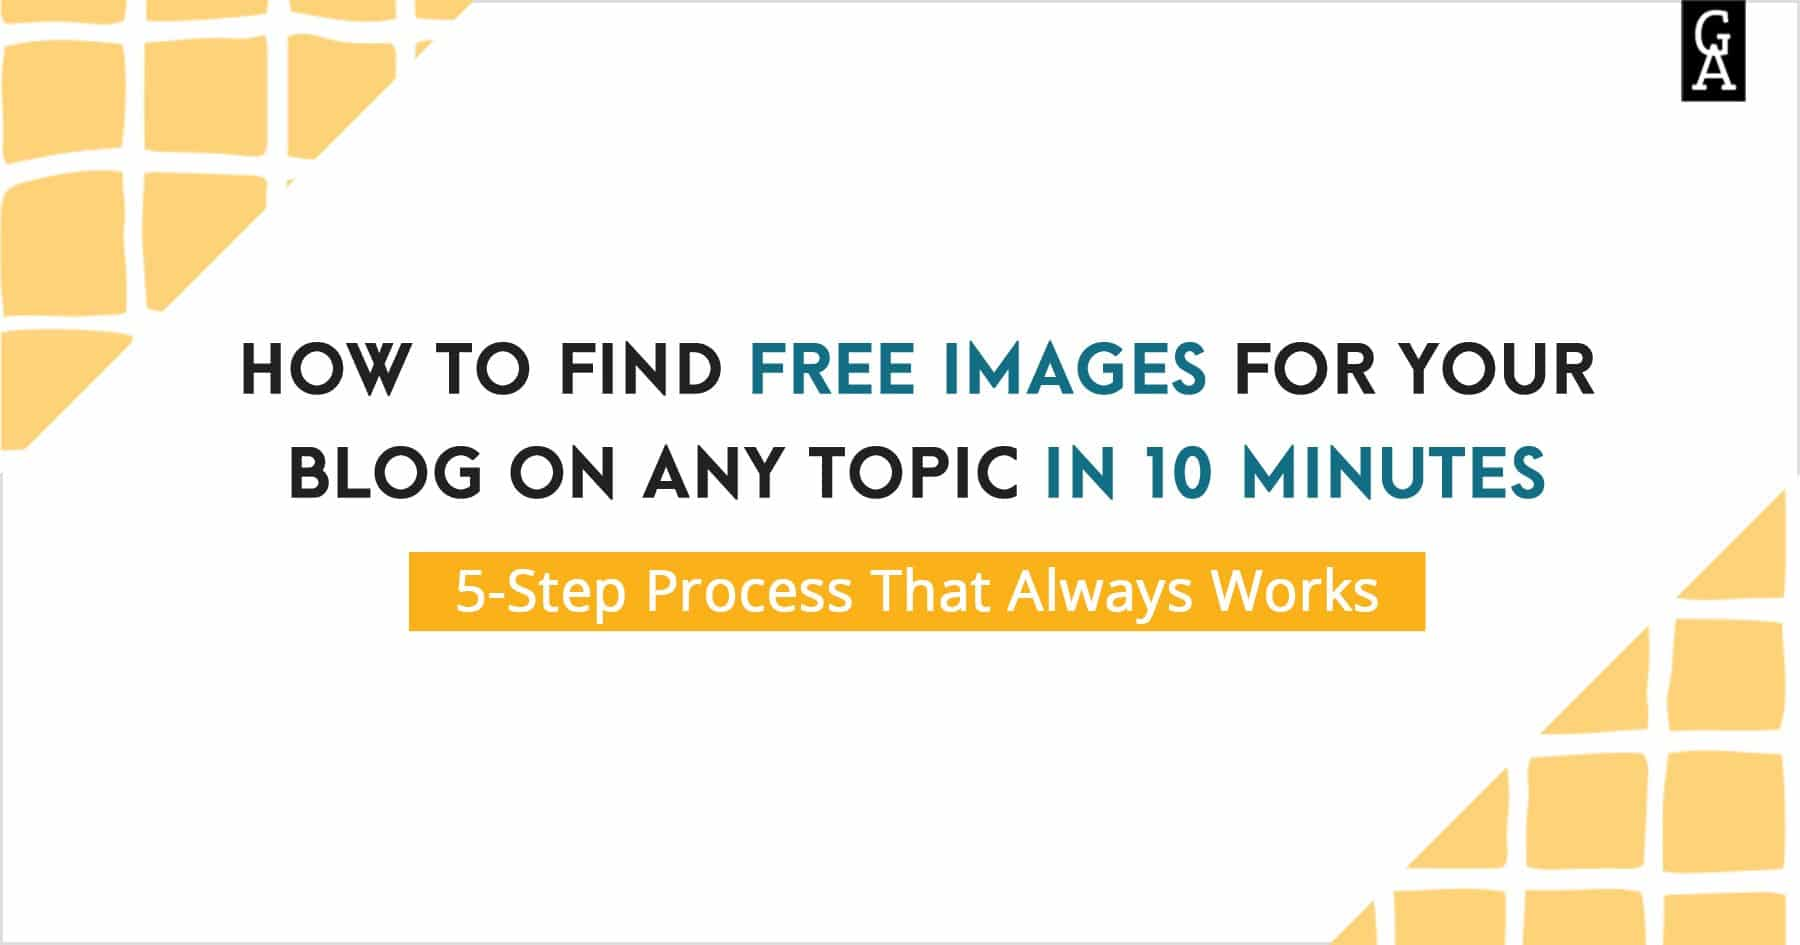 How to Find Free Images for Your Blog in 10 Minutes. 5-Step Process That Always Works.